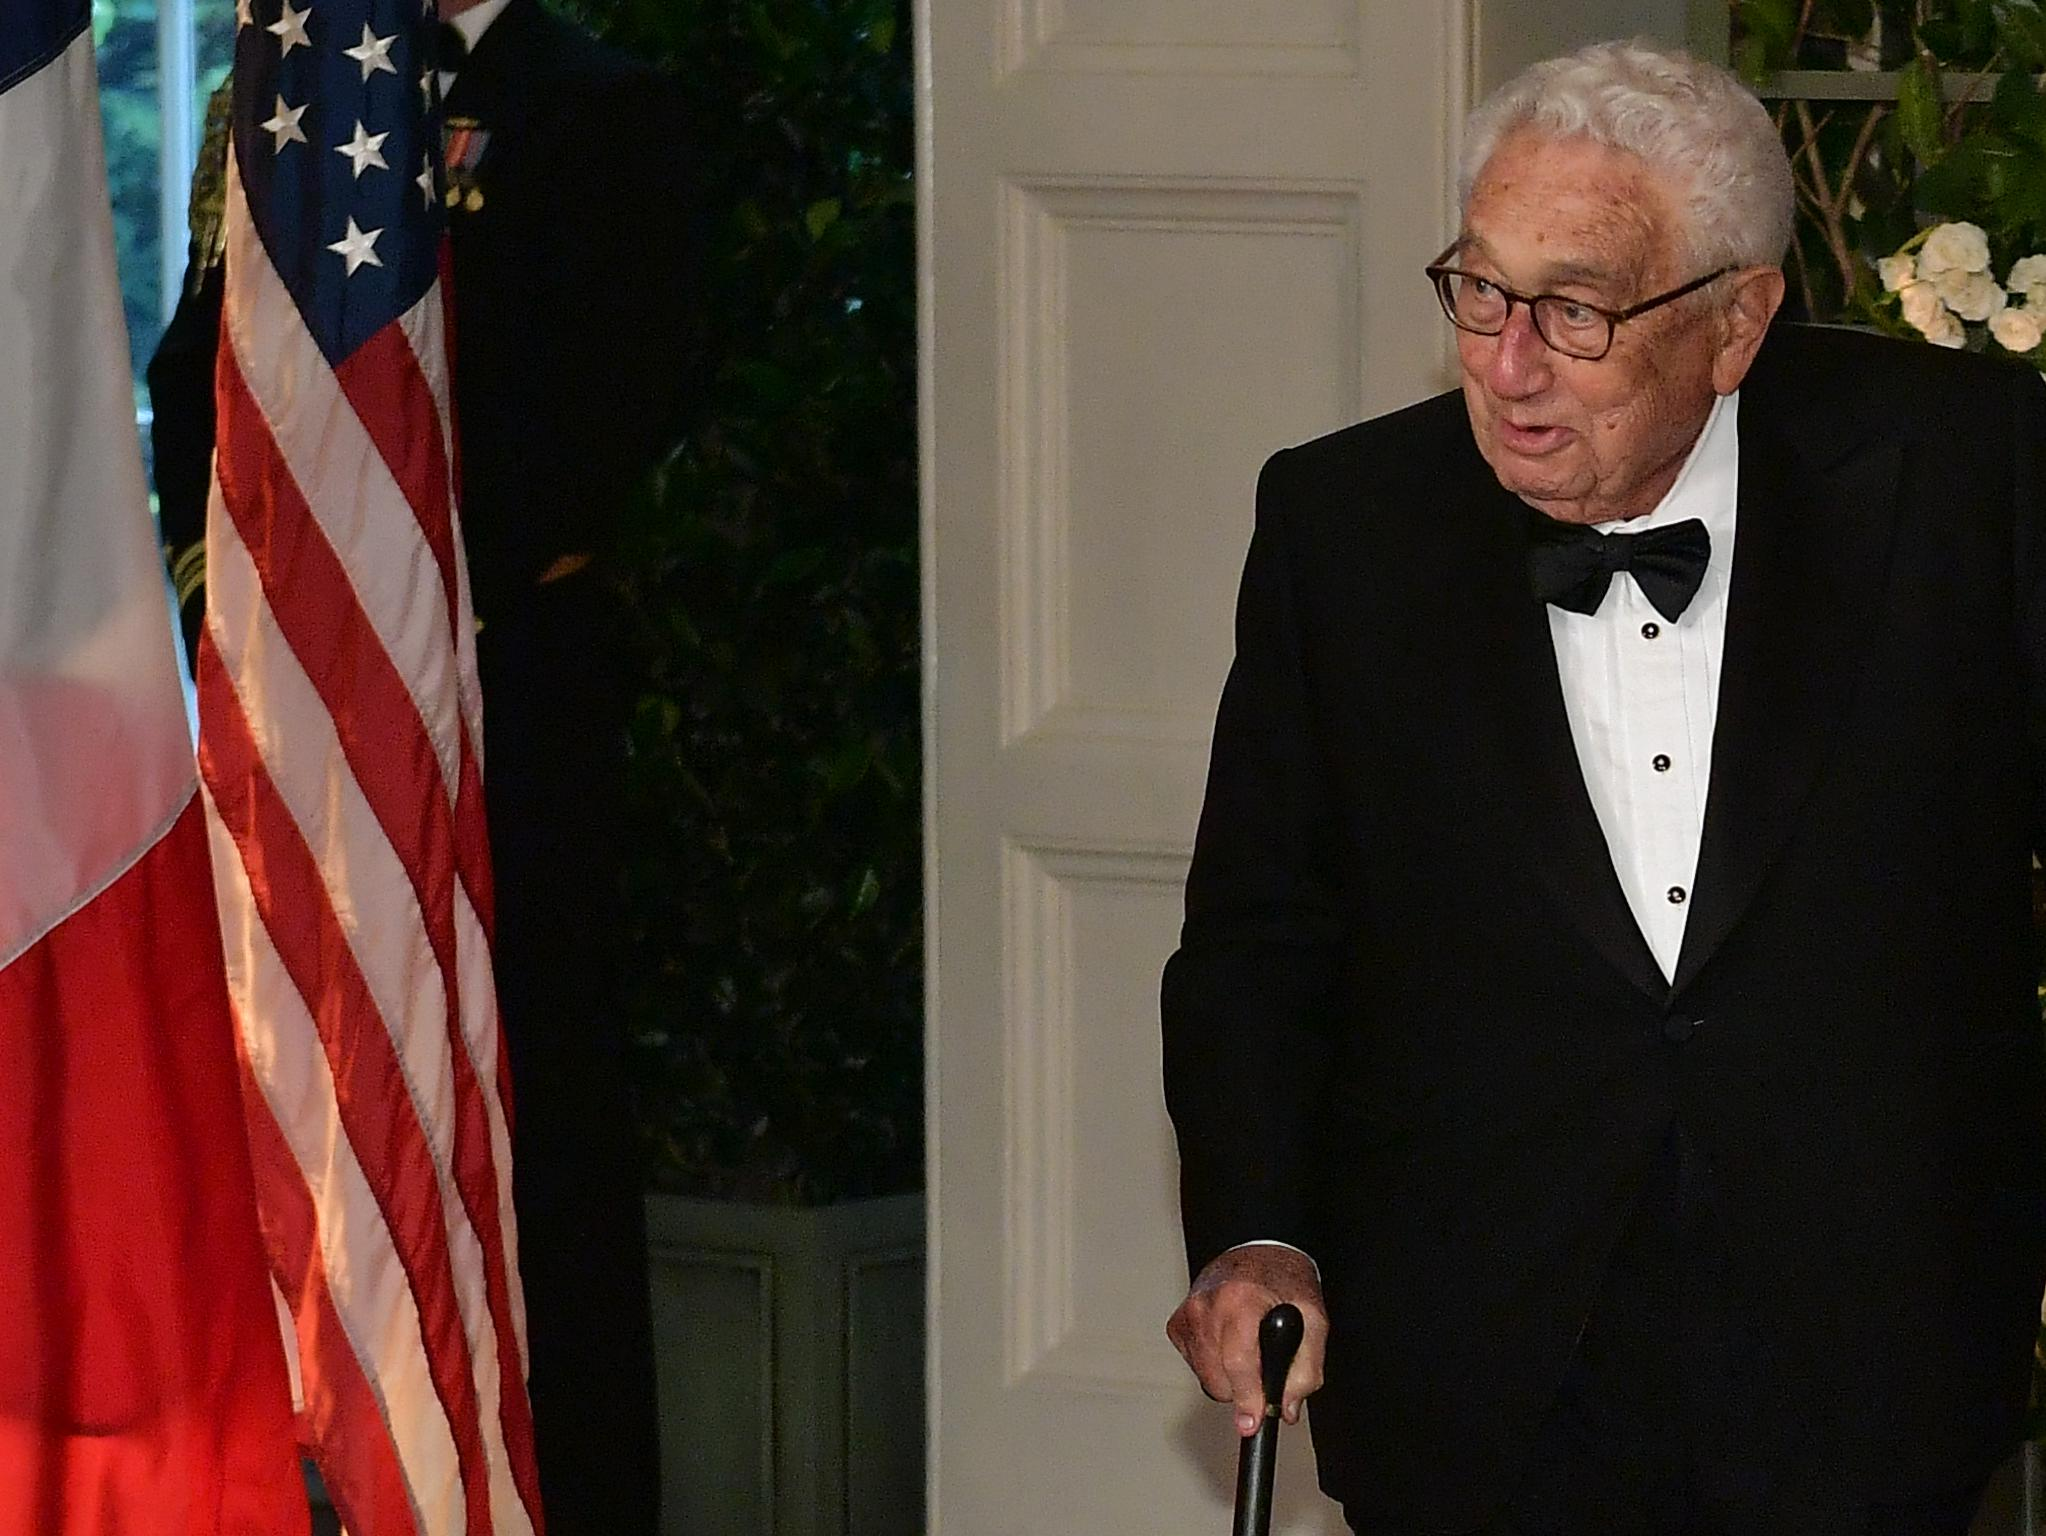 Henry Kissinger walking with a cane.